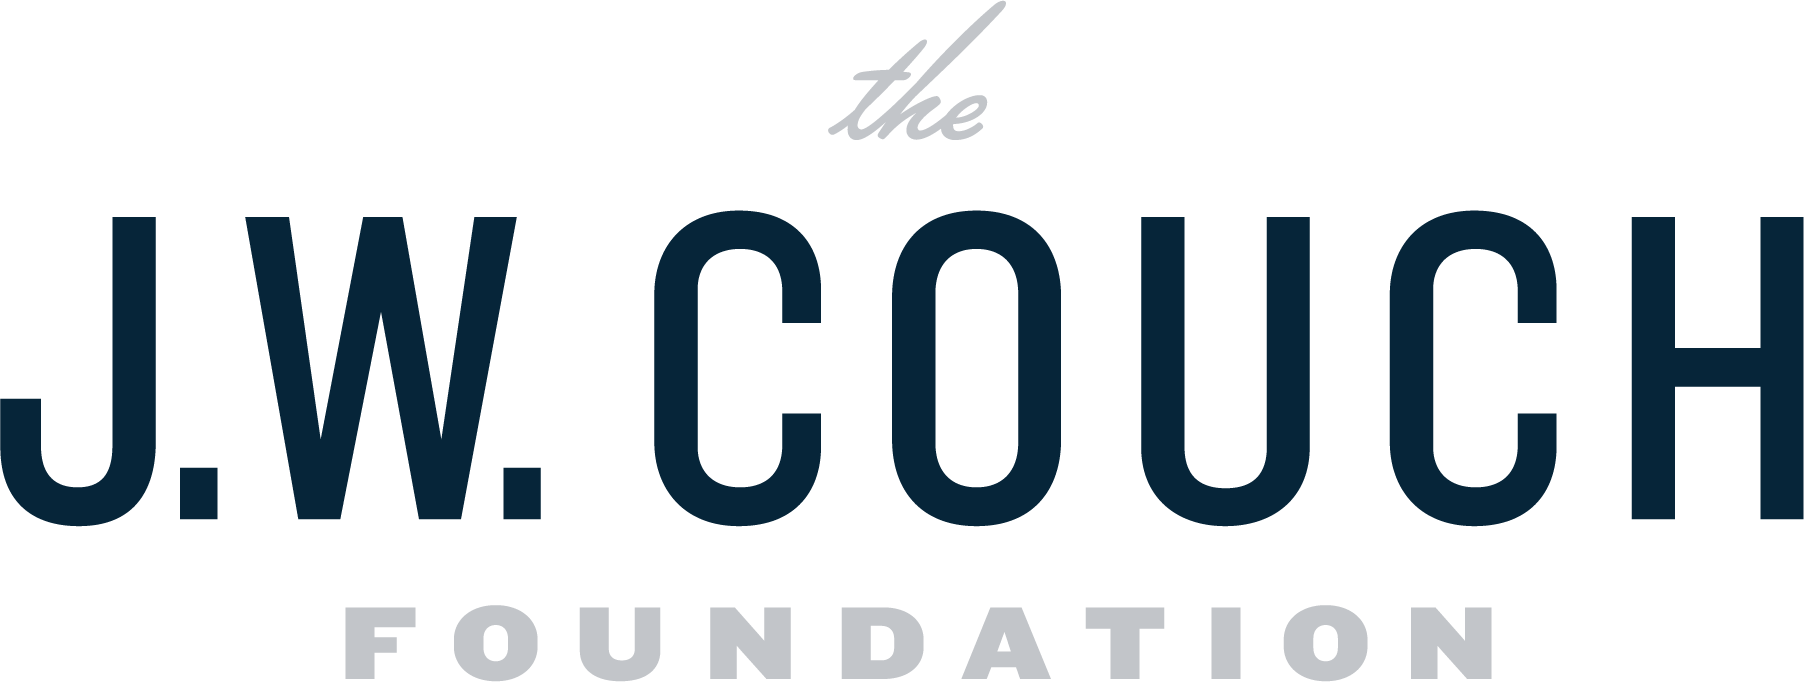 The J.W. Couch Foundation